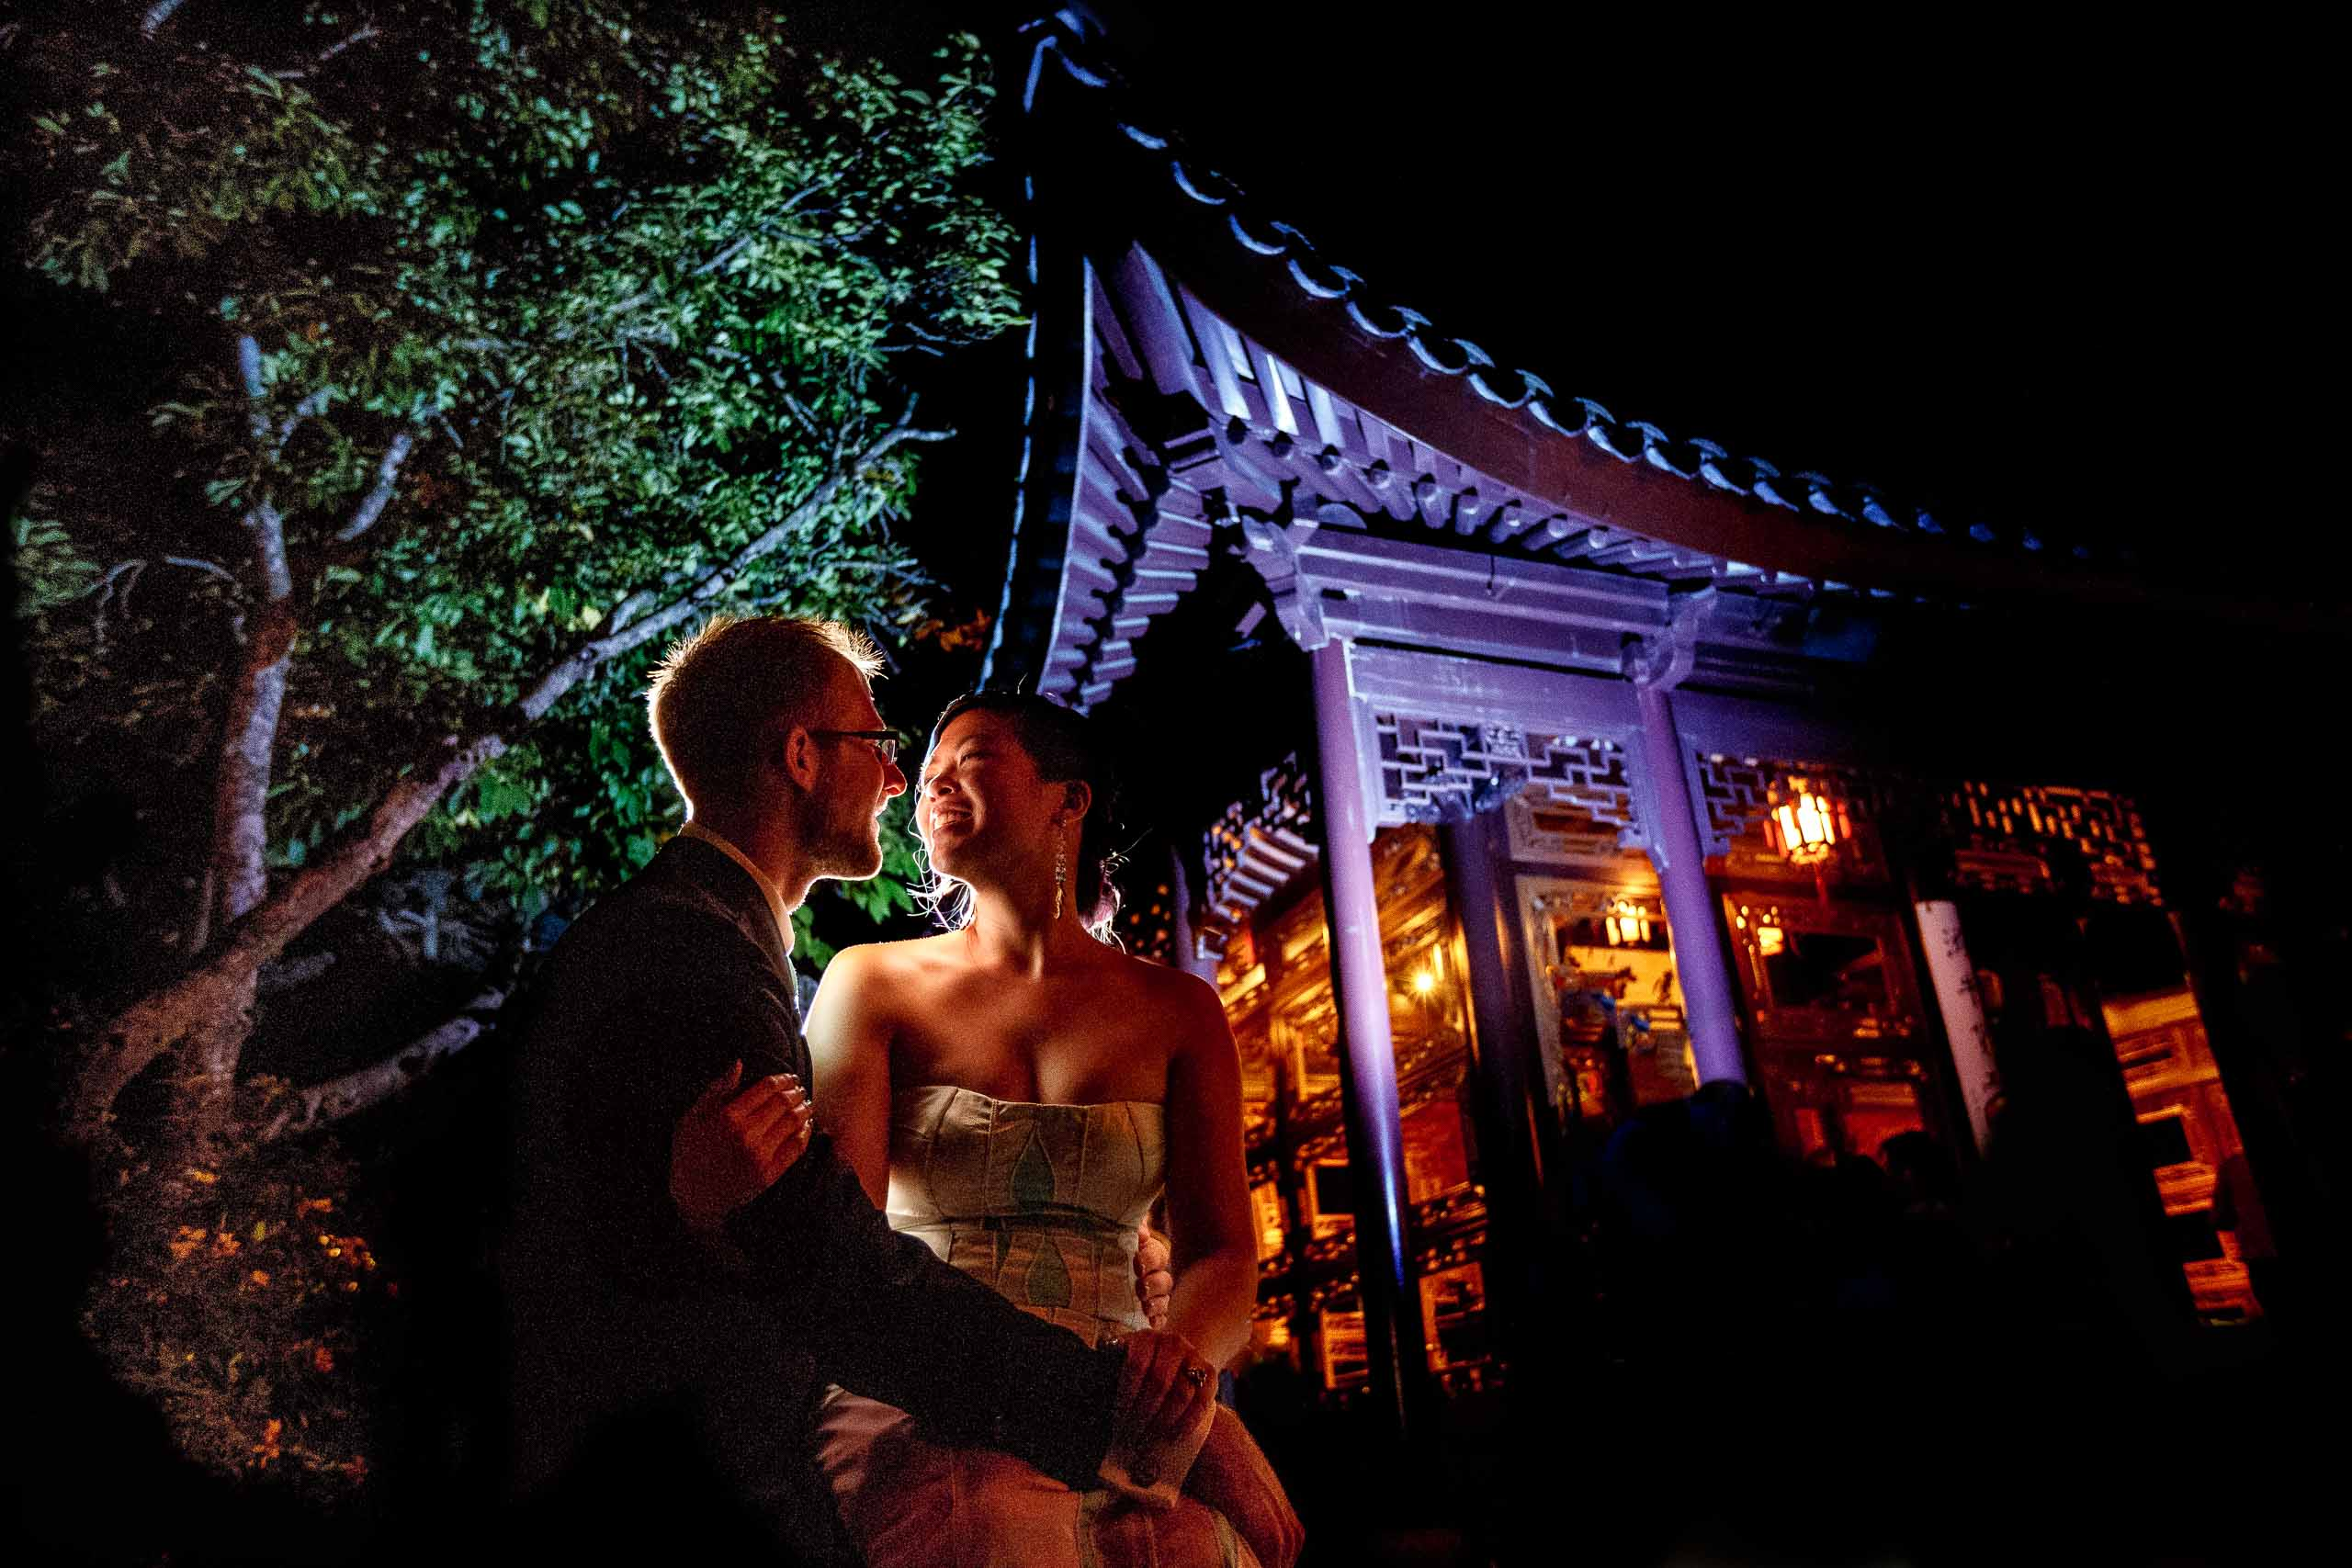 Bride and groom creative night portrait in the gardens for their Portland Chinese gardens elopement